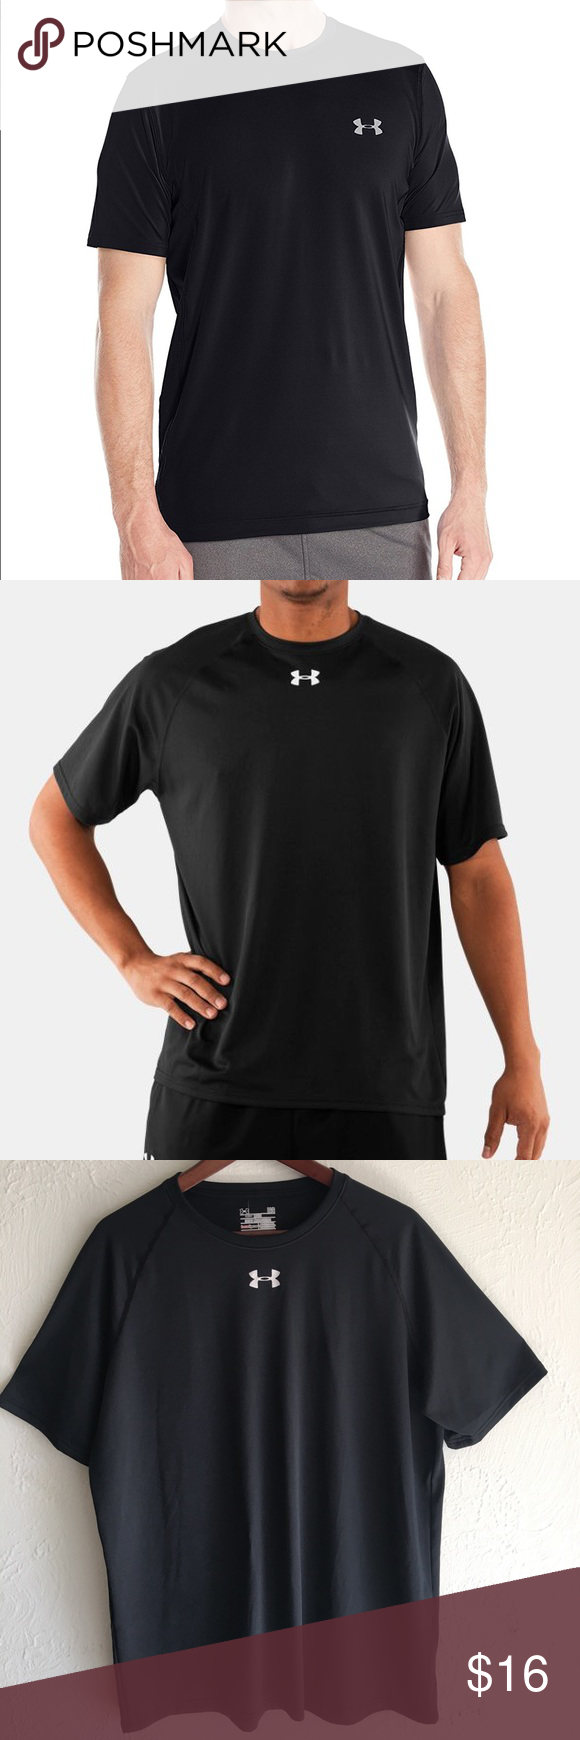 Under Armour Black Shirt Black Under armour men's shirt size Large (Loose) Like New No holes no stains Under Armour Shirts Tees - Short Sleeve